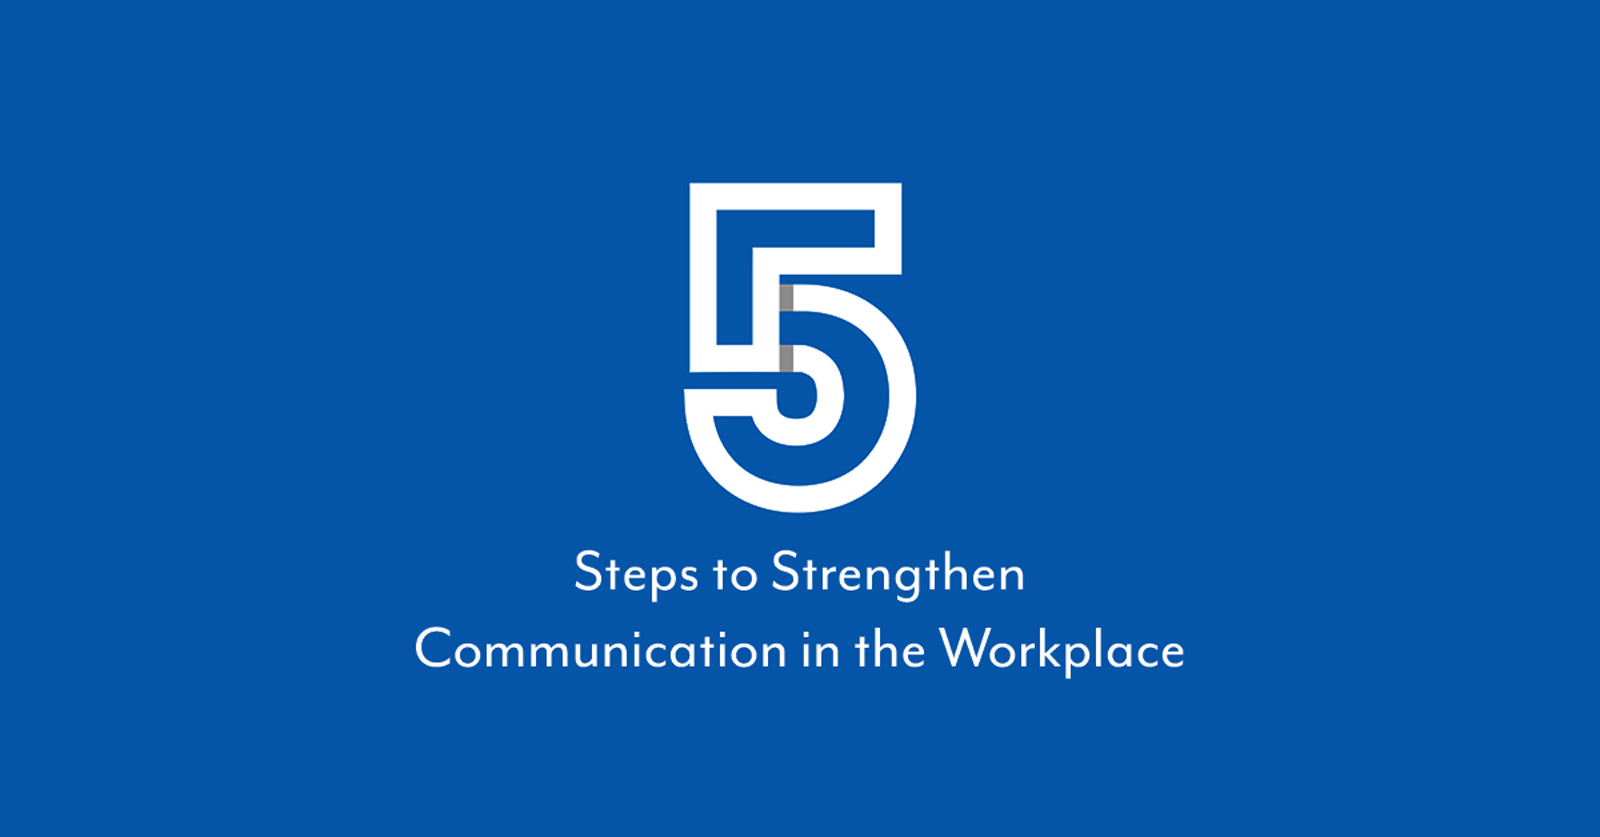 5 Steps to Strengthen Communication in the Workplace